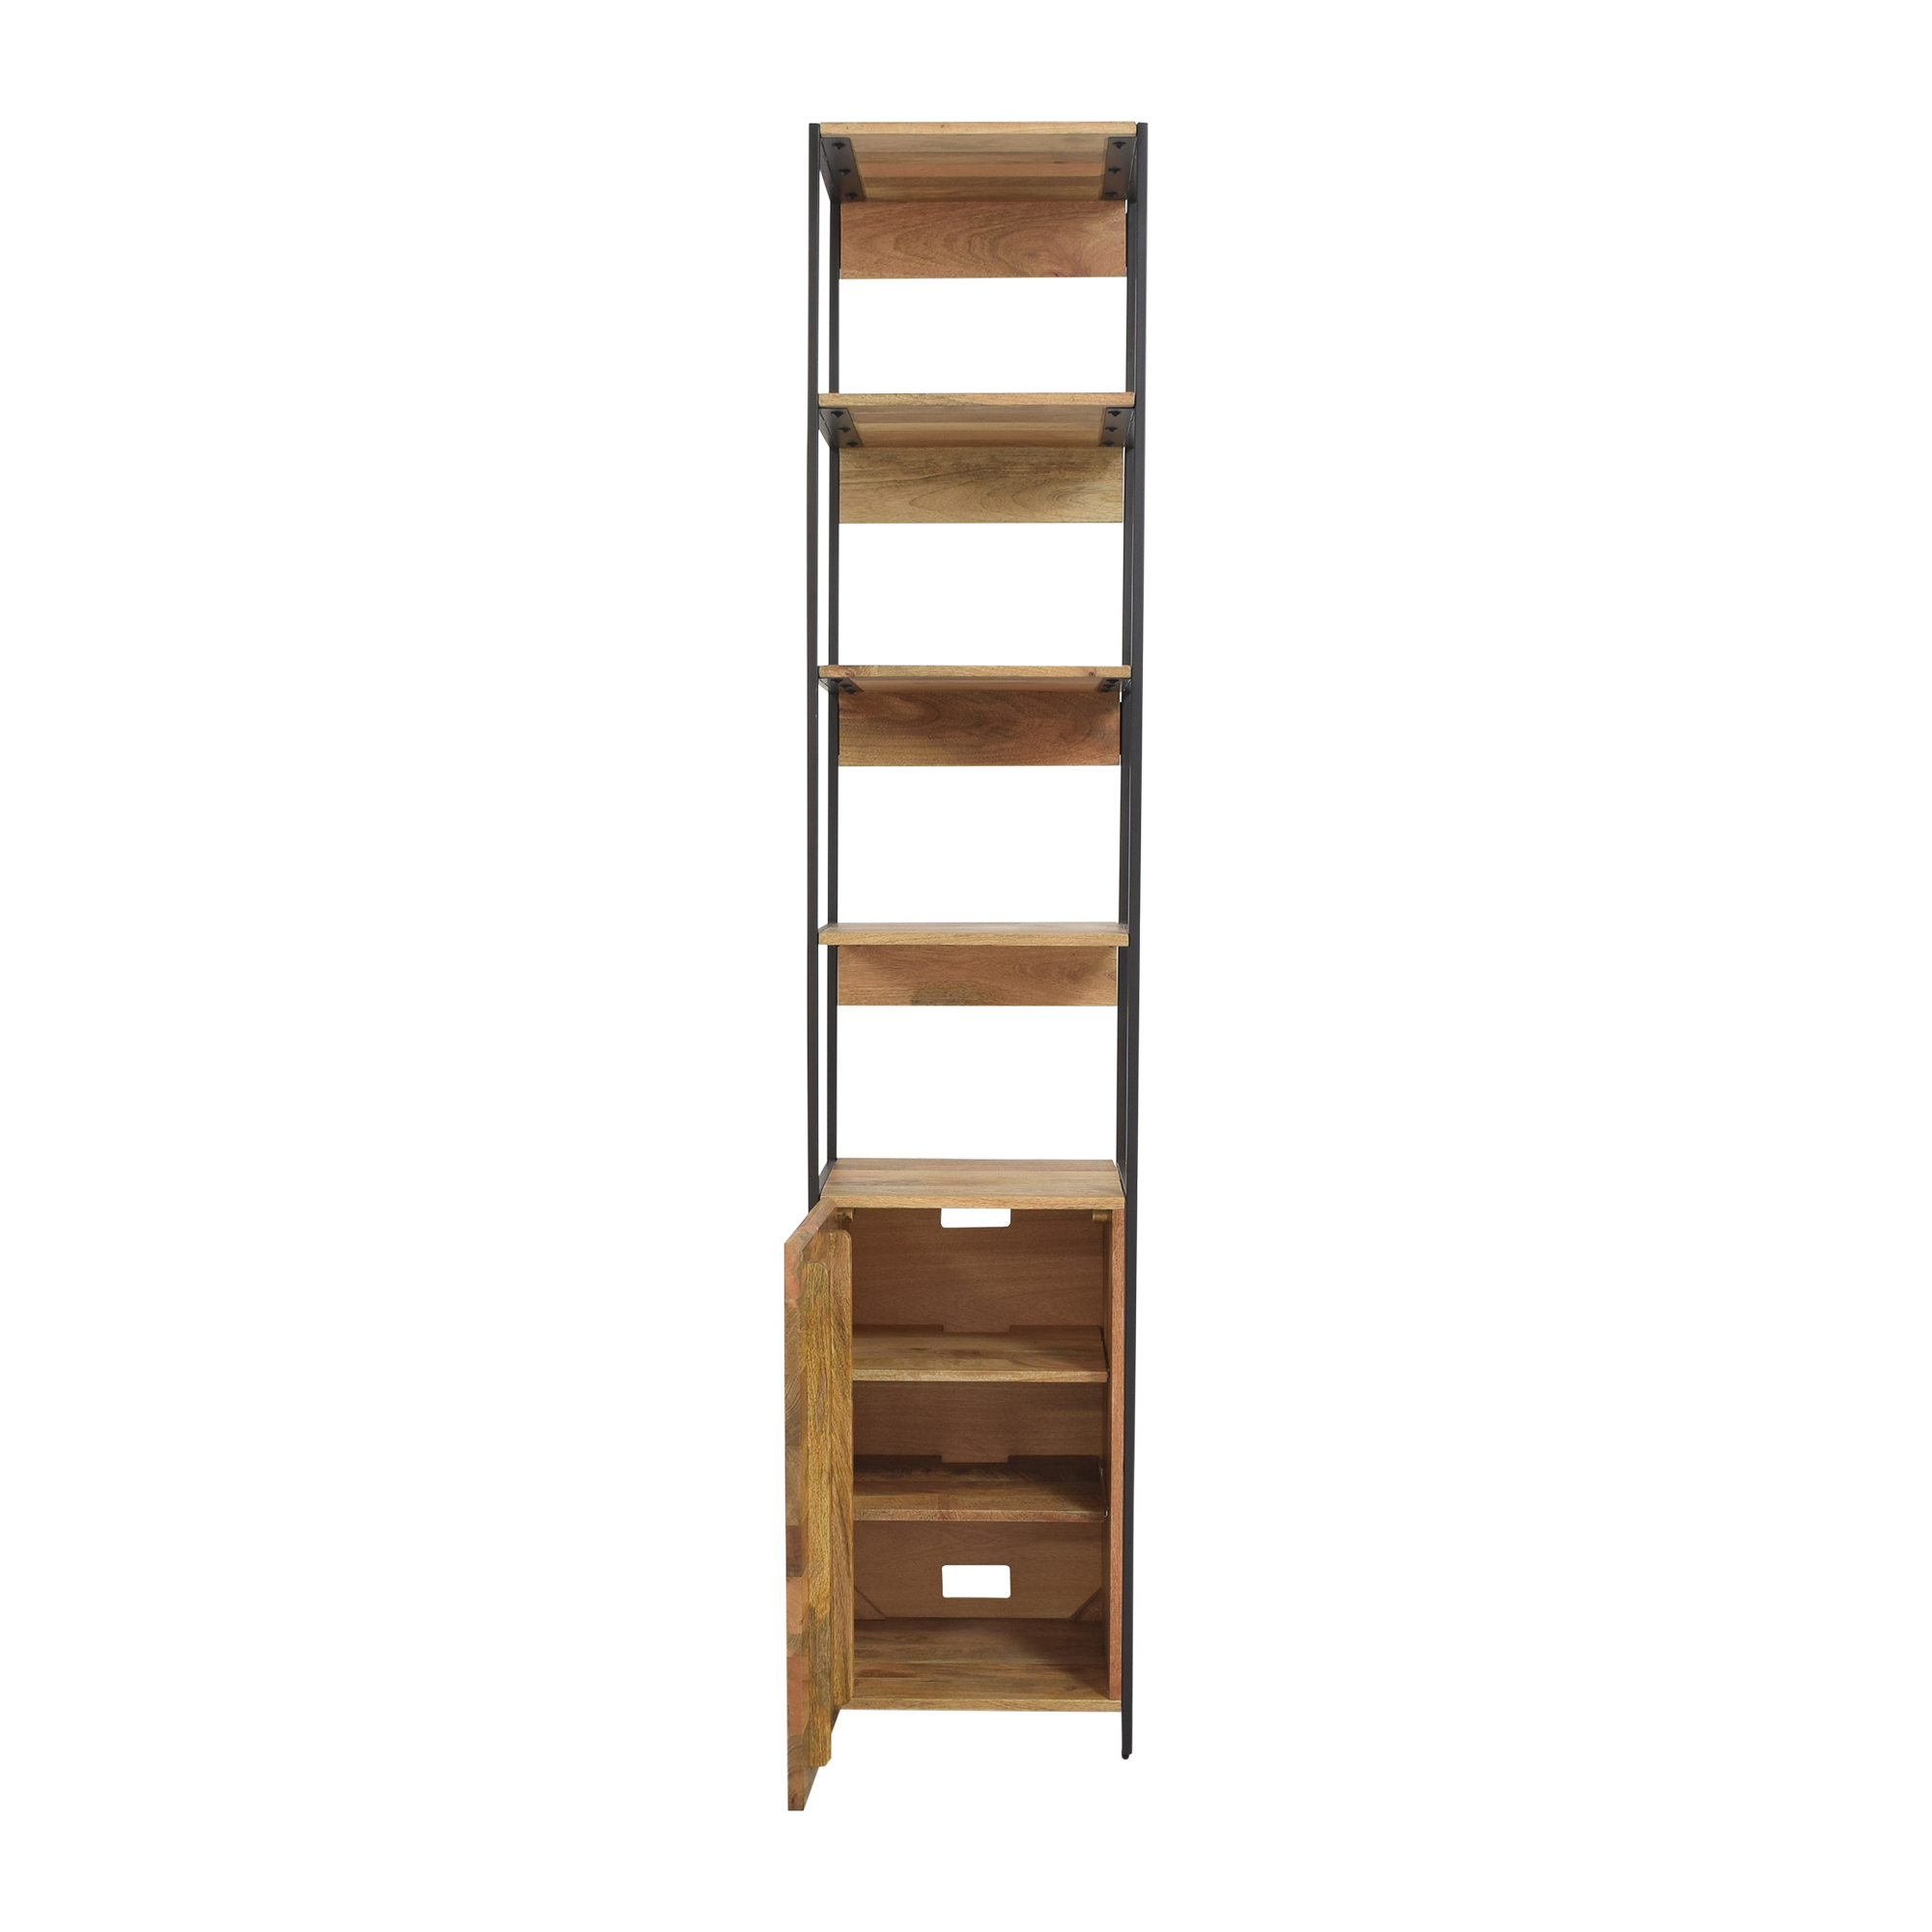 West Elm West Elm Industrial Modular Open and Closed Storage price